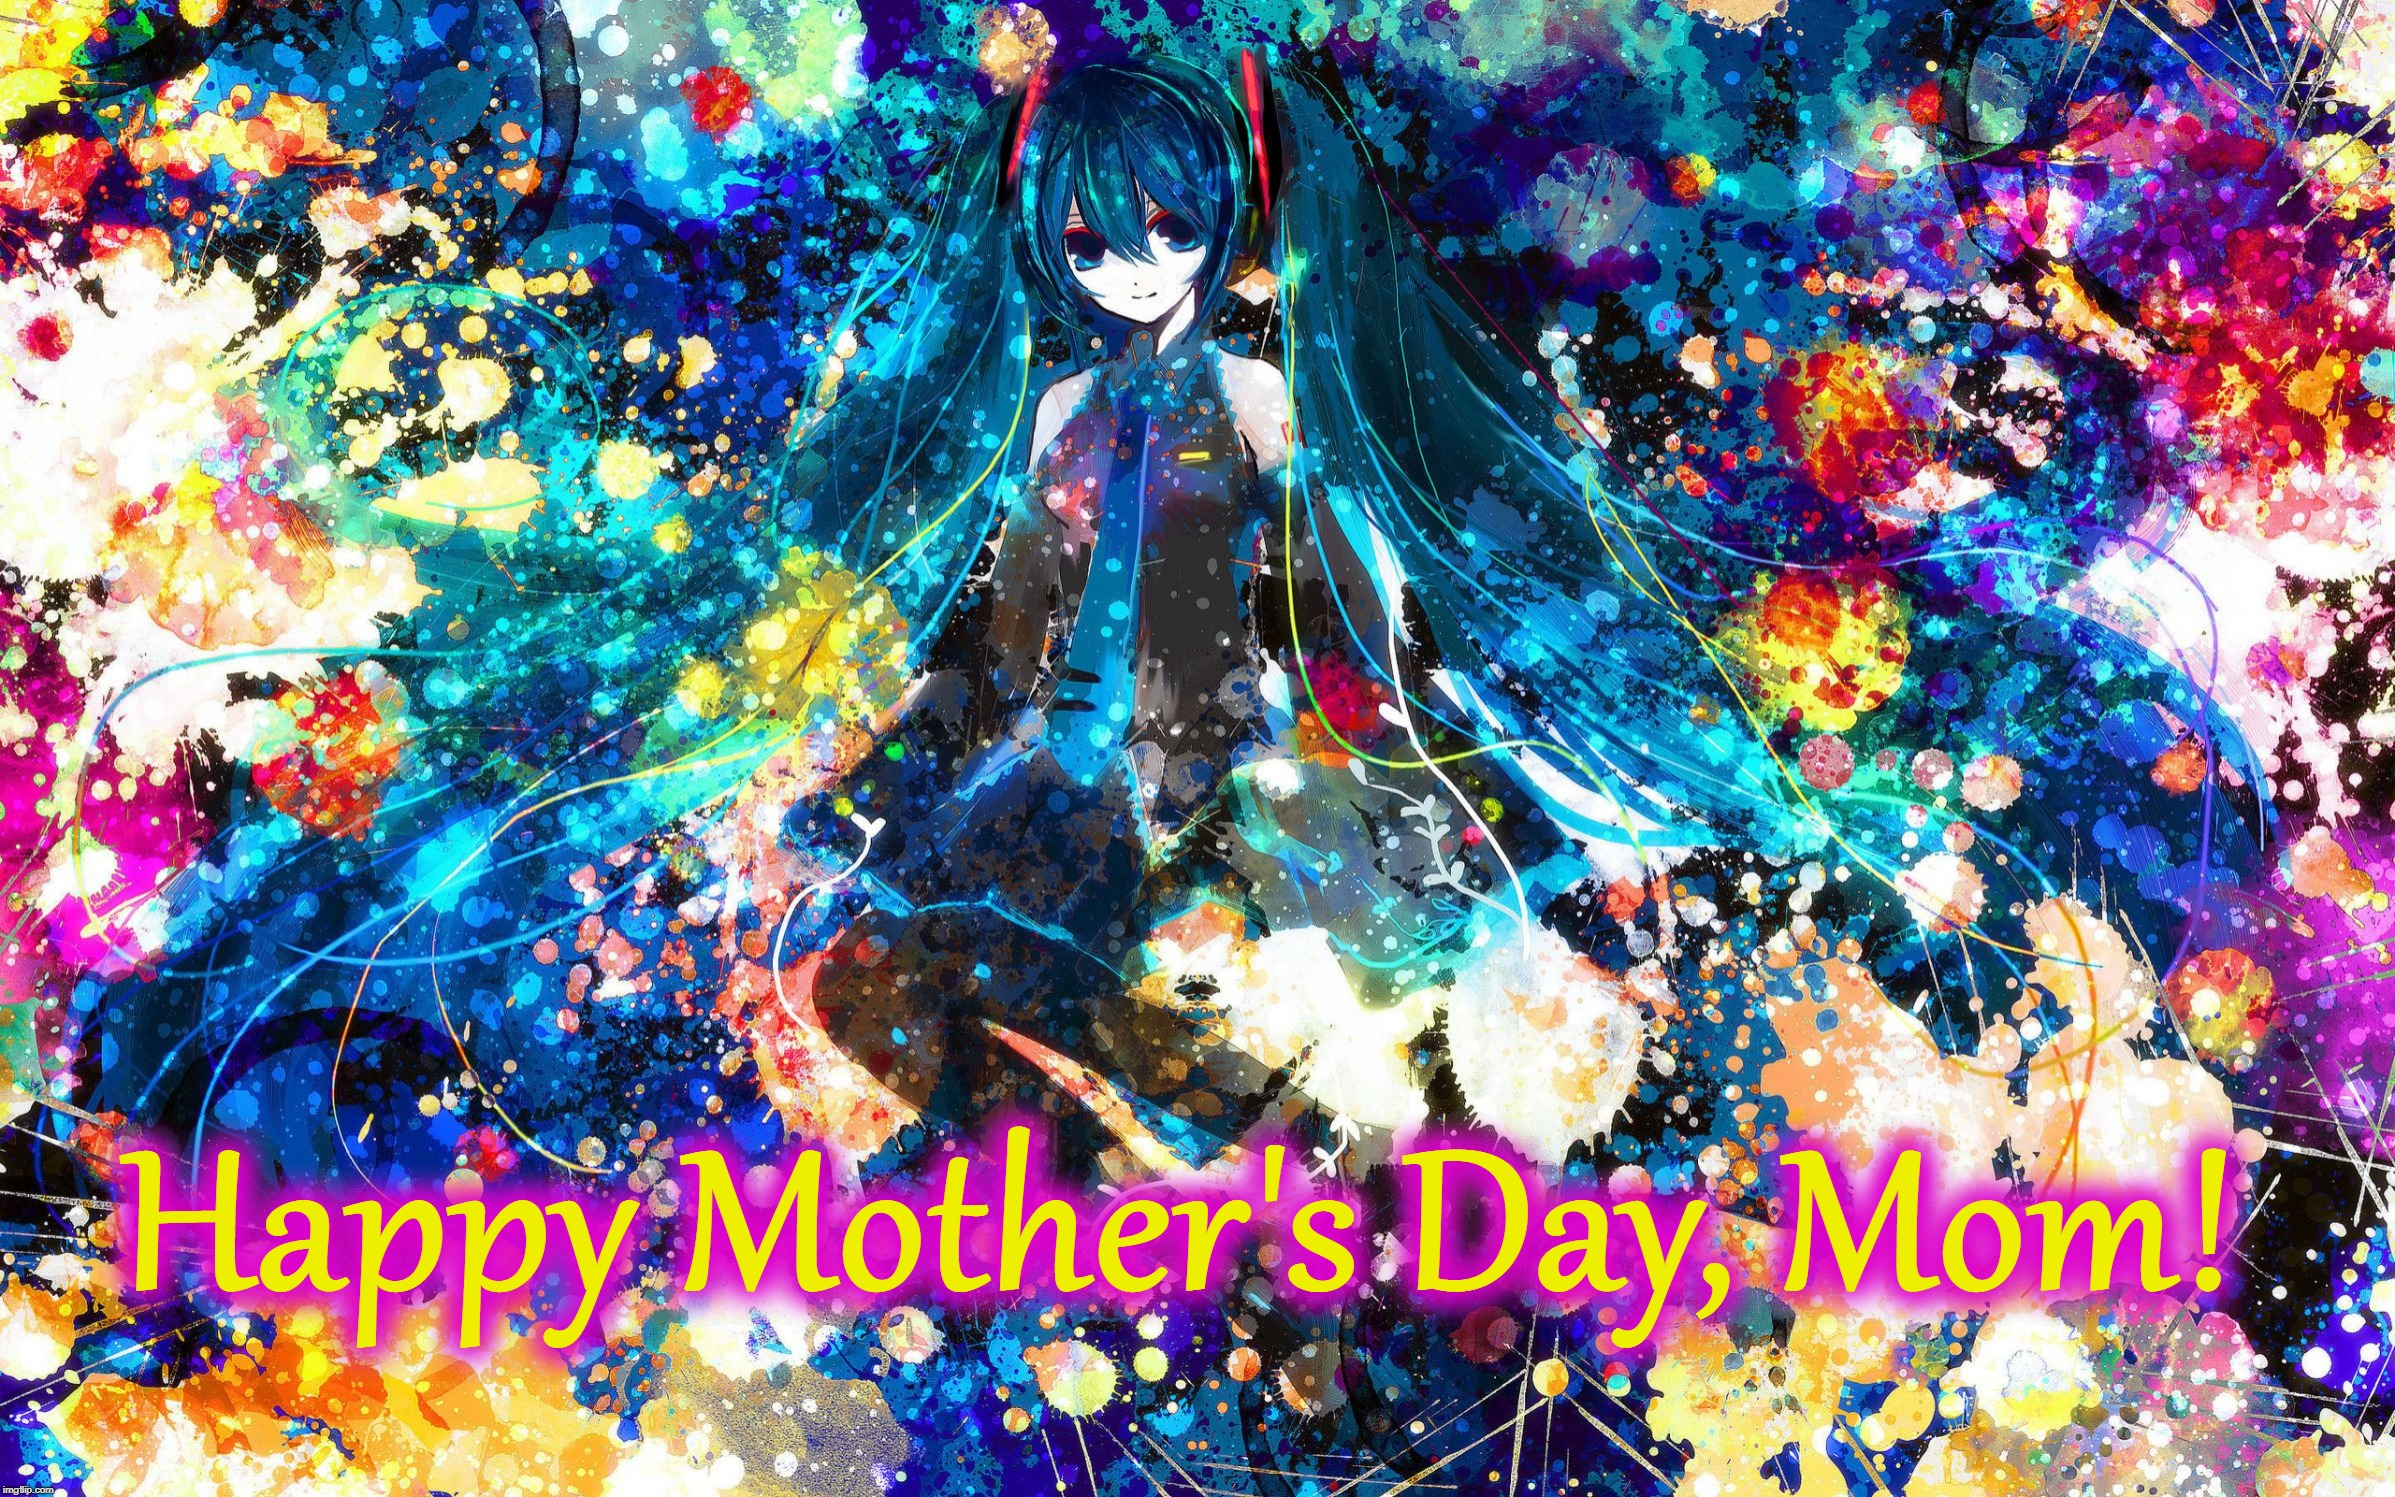 Beautiful Vocaloid Mother's Day | Happy Mother's Day, Mom! | image tagged in miku floral art,hatsune miku,mother's day,vocaloid,anime,colors | made w/ Imgflip meme maker